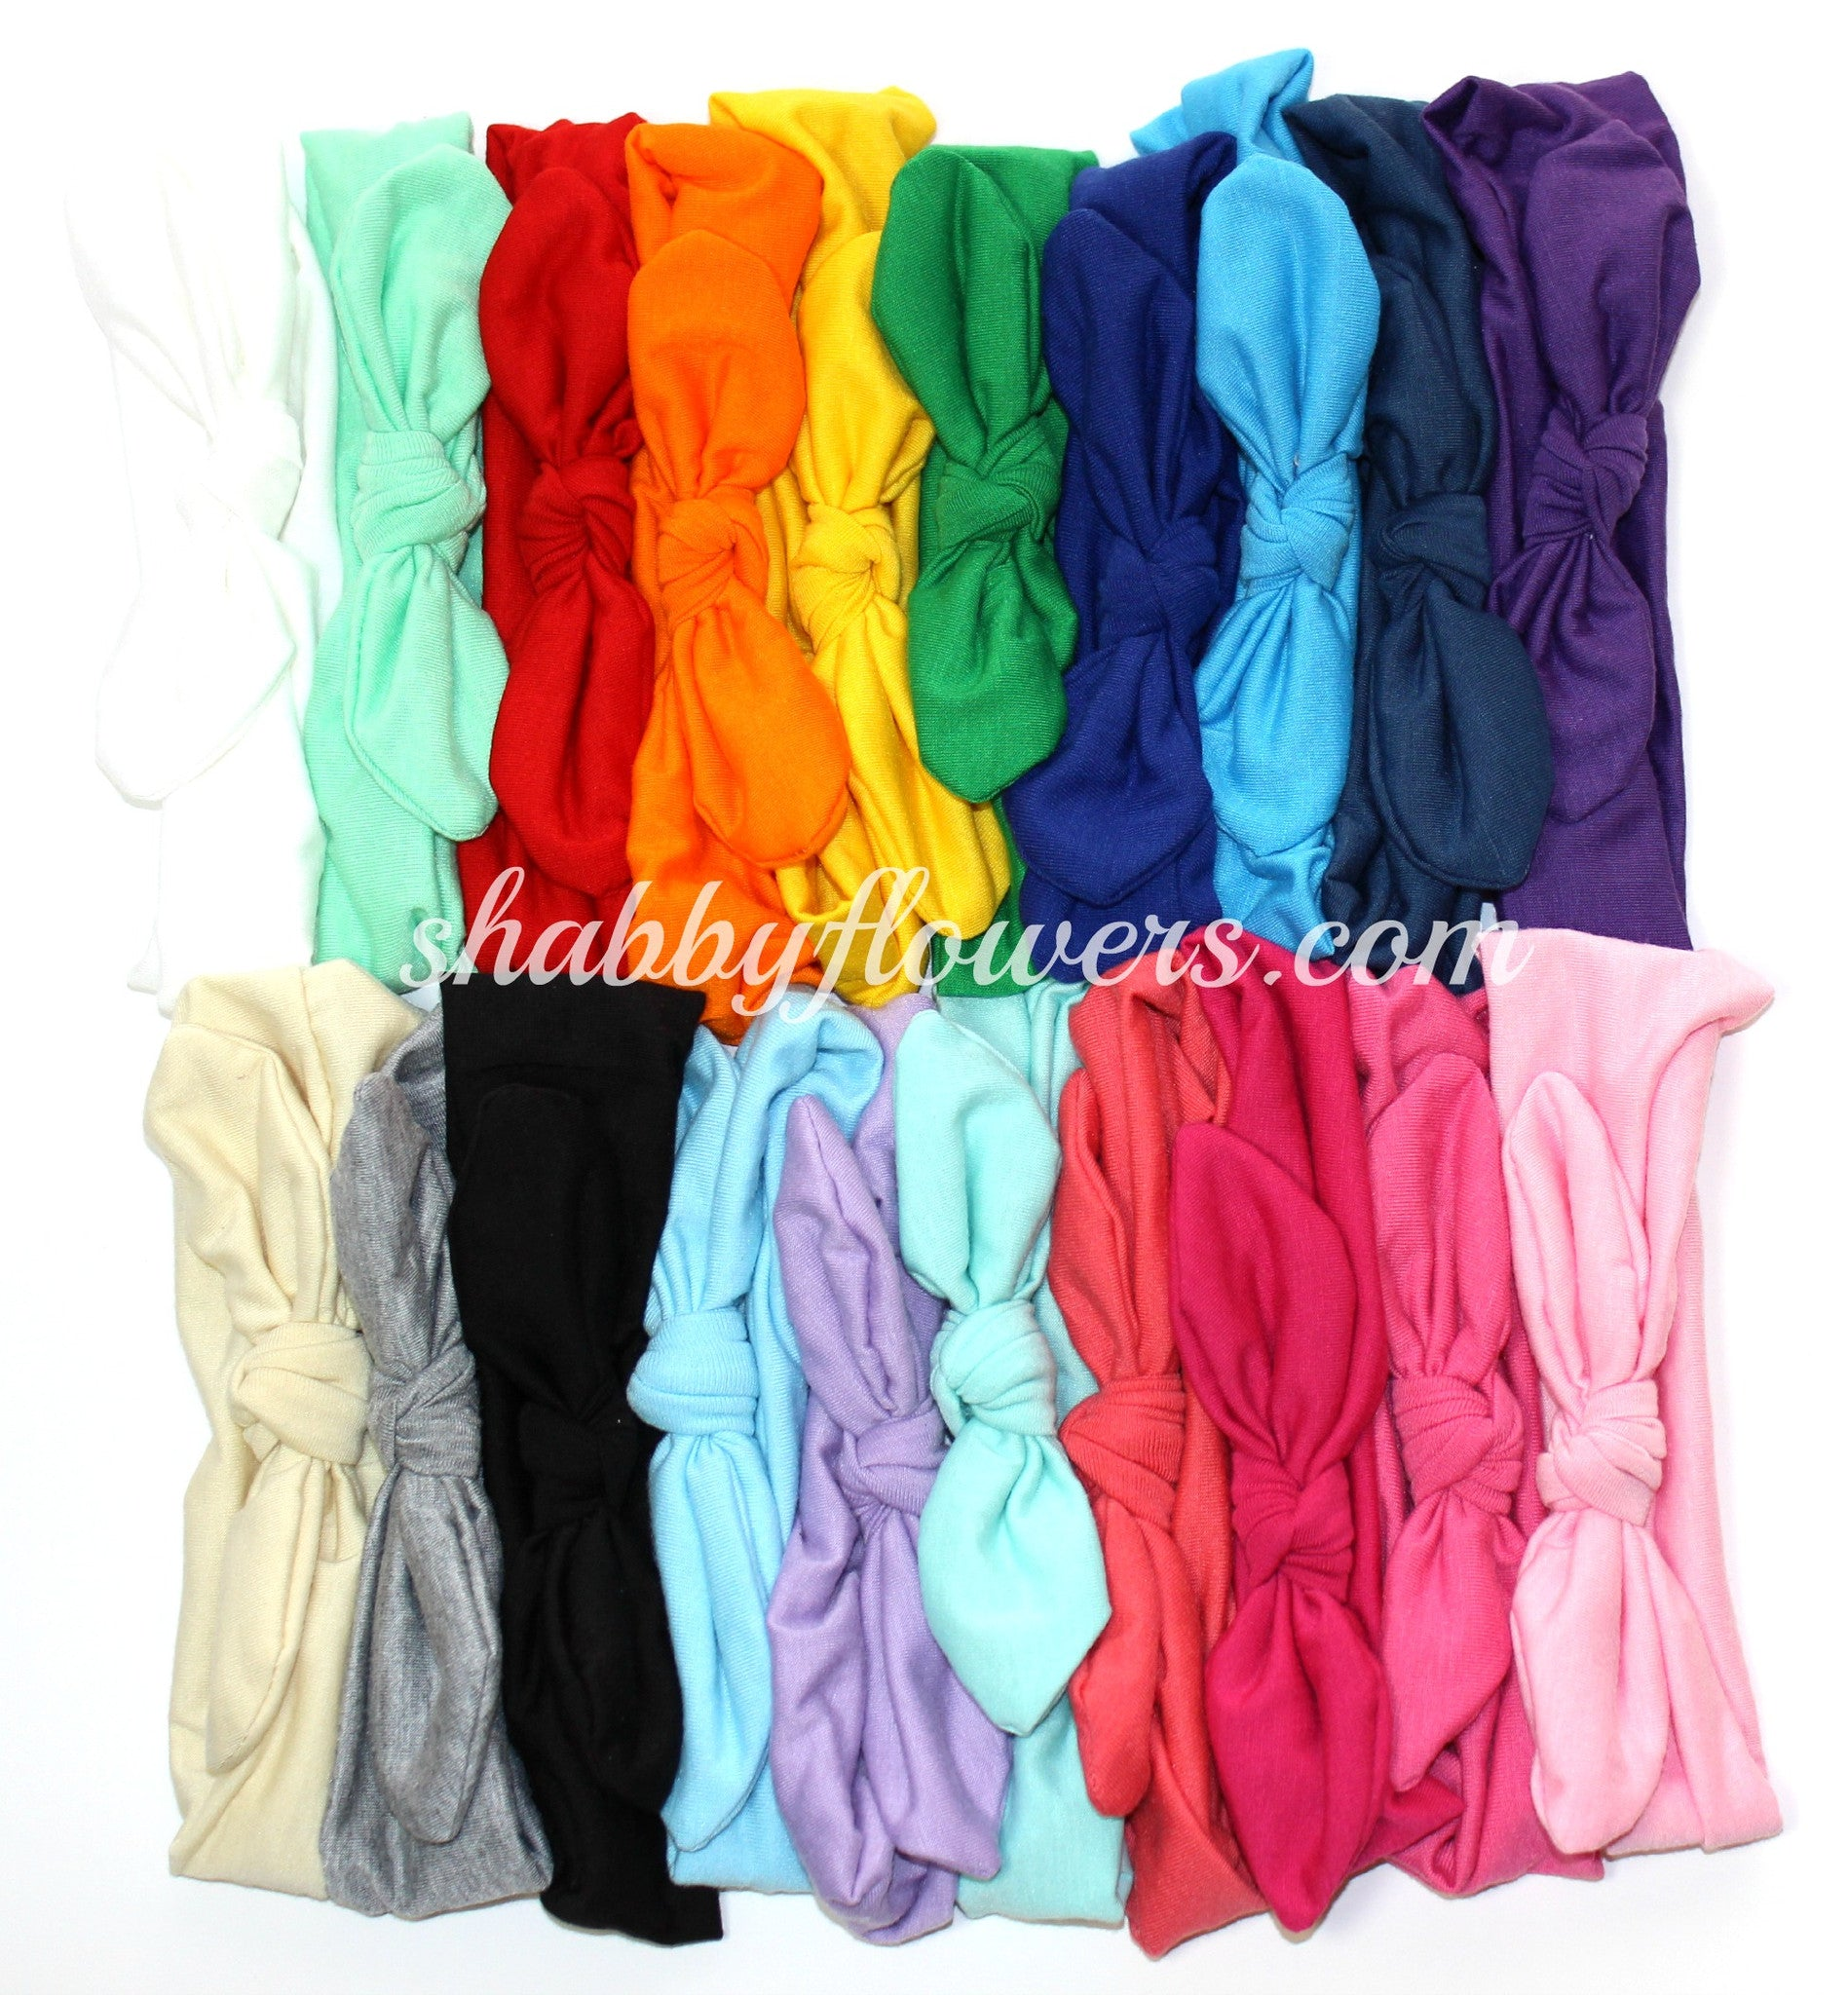 Knot Headband Pack of 20 Solid Colors - Set #9 - shabbyflowers.com